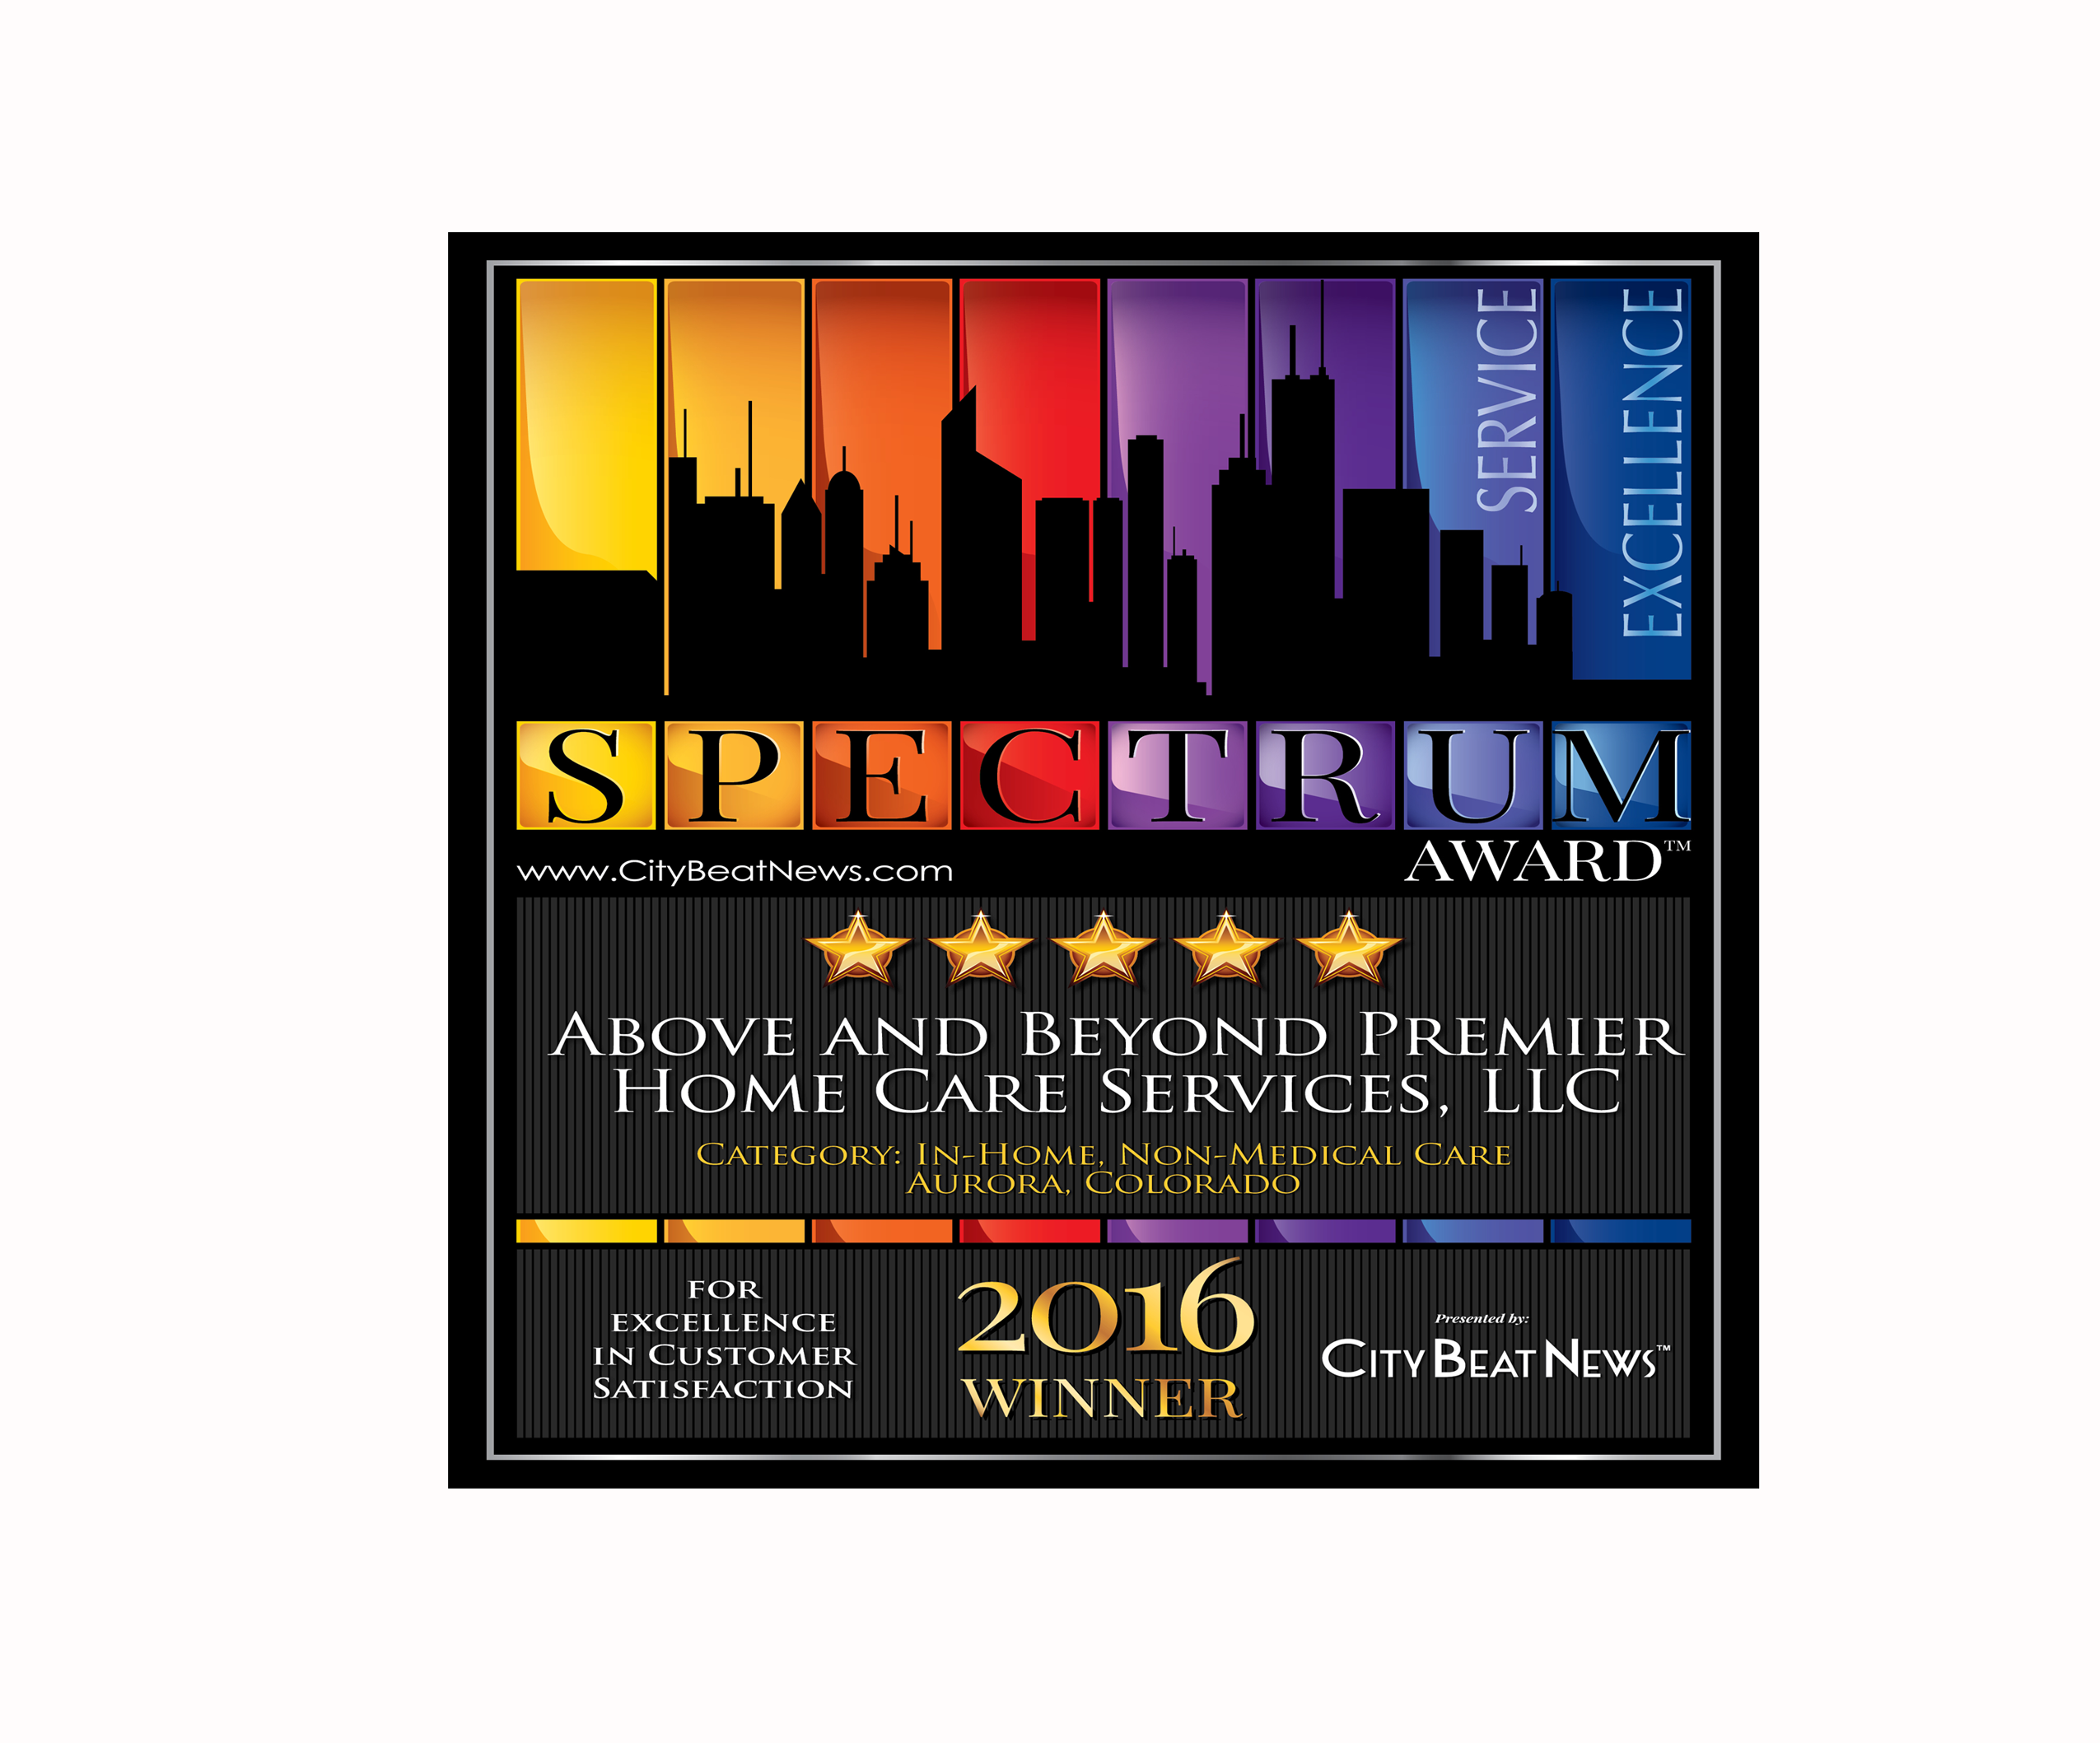 Above and Beyond Premier Home Care Services